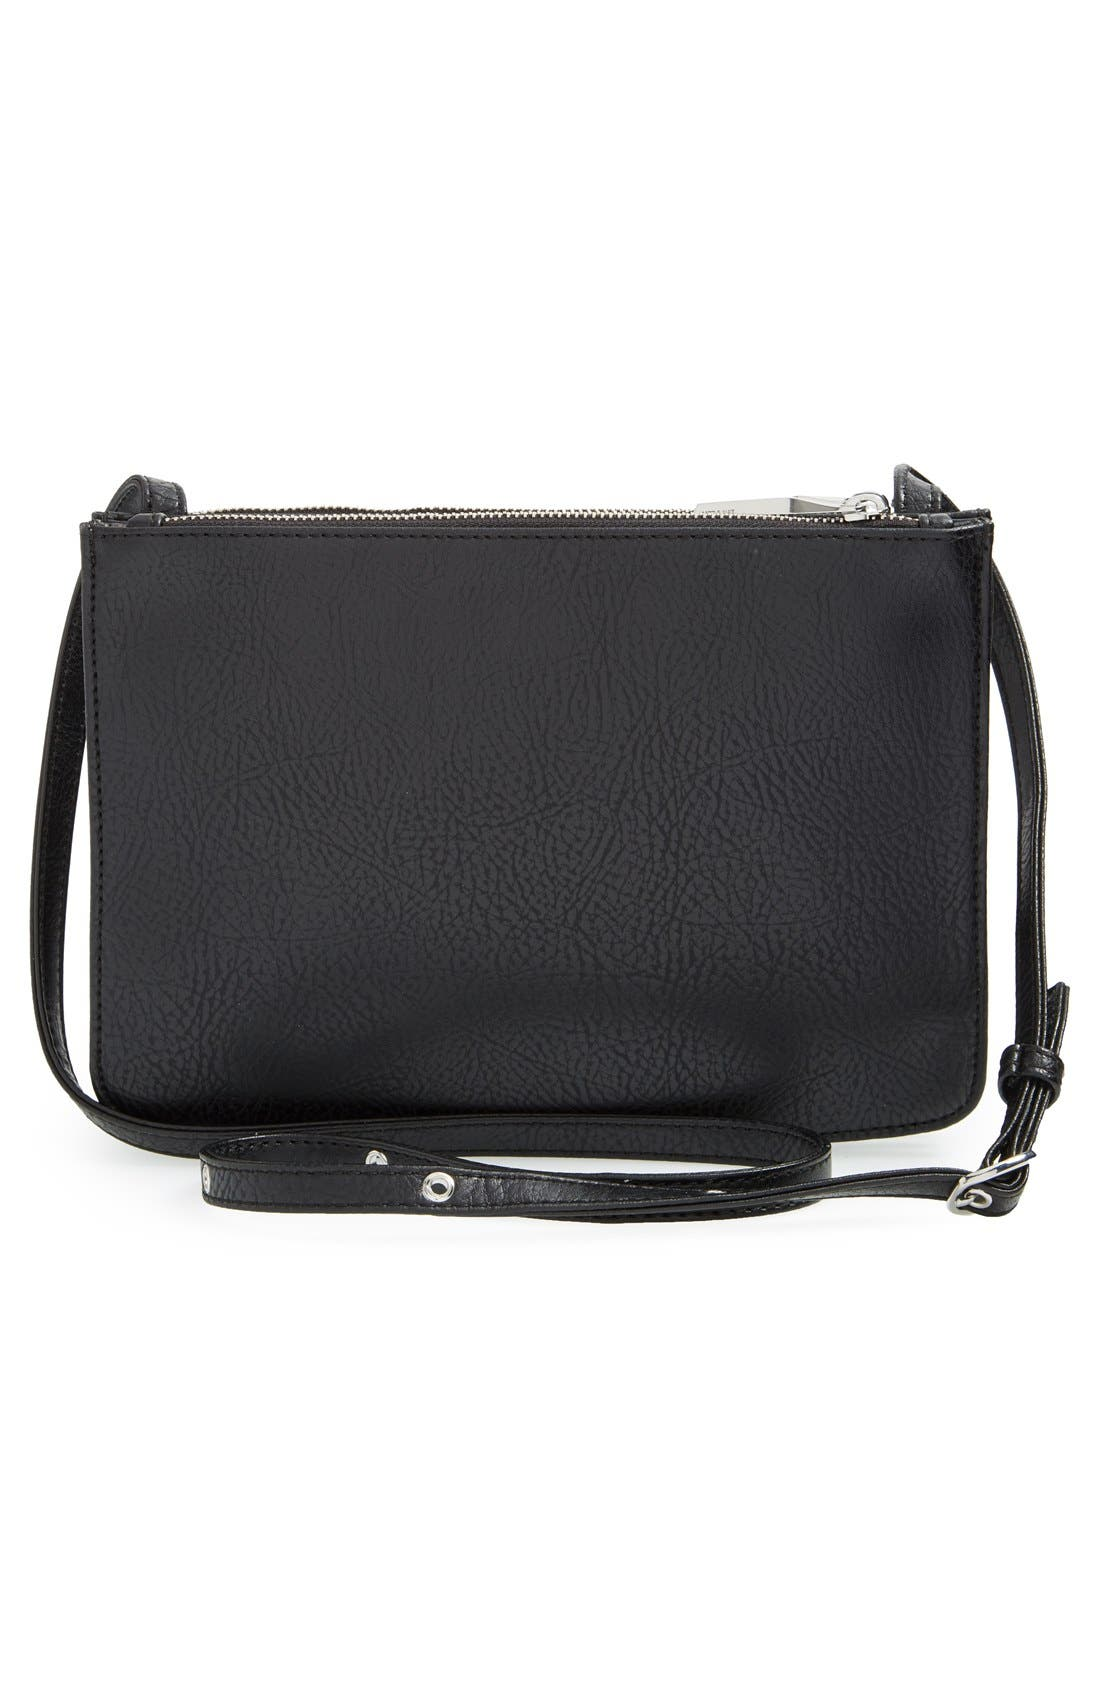 Alternate Image 3  - Matt & Nat 'Gil' Vegan Leather Crossbody Bag